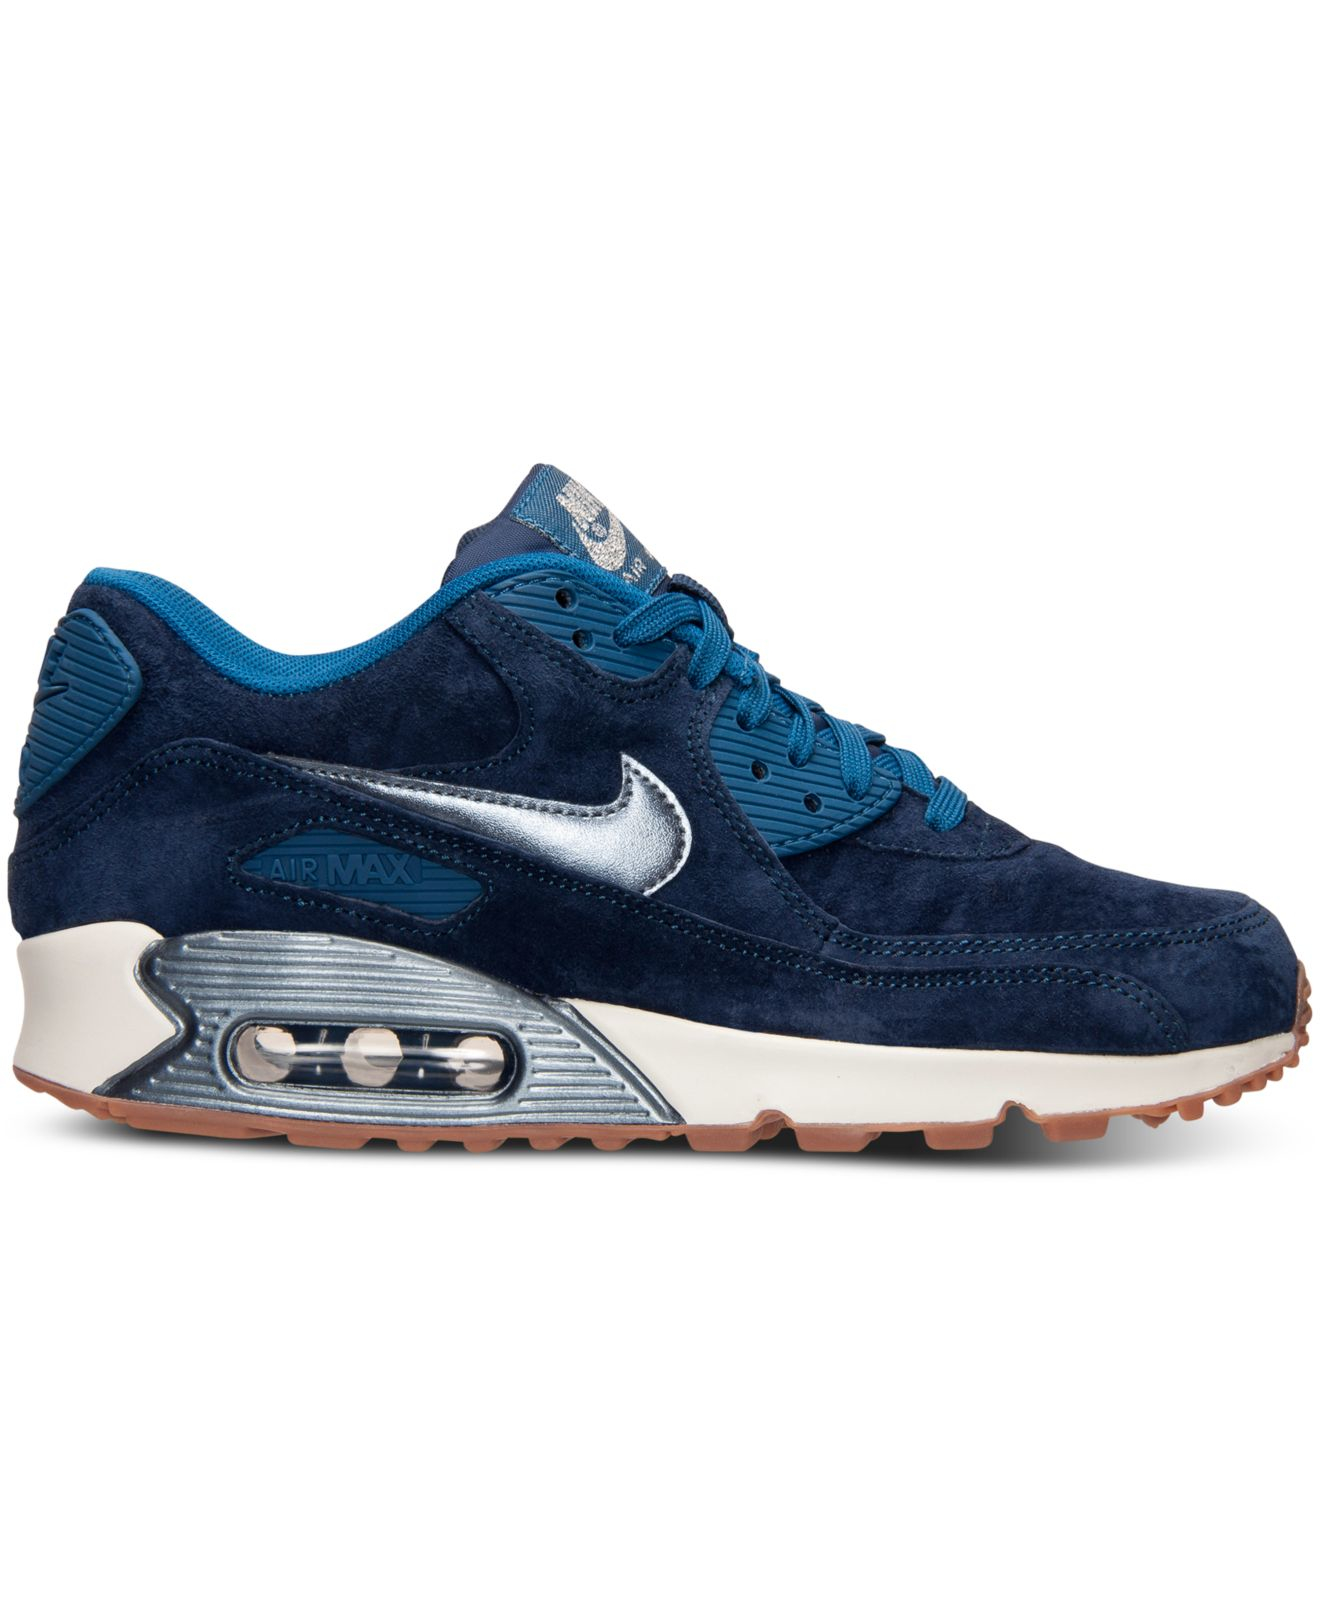 bbe10f2ce3dc0 Previously sold at Macy s · Women s Nike Air Max 90 ...